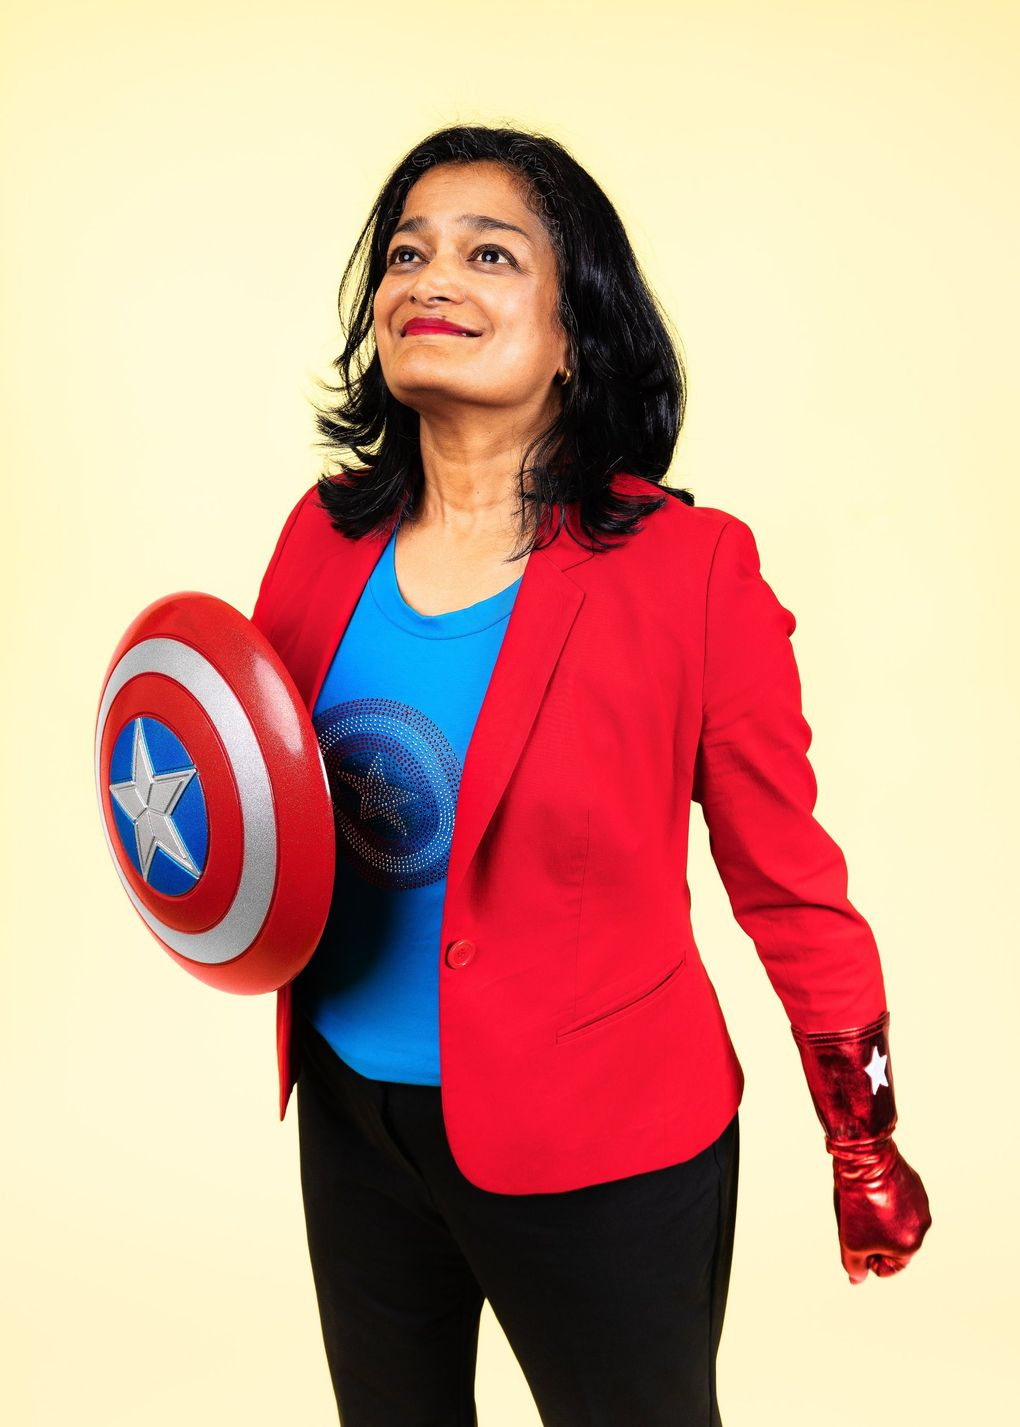 """Congresswoman Pramila Jayapal, D-Seattle, says in the exhibit: """"Sometimes people ask me why I don't just focus on one issue, and why I'm working on so many things, and I respond that I am intersectional. I am not a woman on Monday and an immigrant on Tuesday, a mom on Wednesday and a worker on Thursday. I'm all of those things all of the time."""" (Nate Gowdy)"""